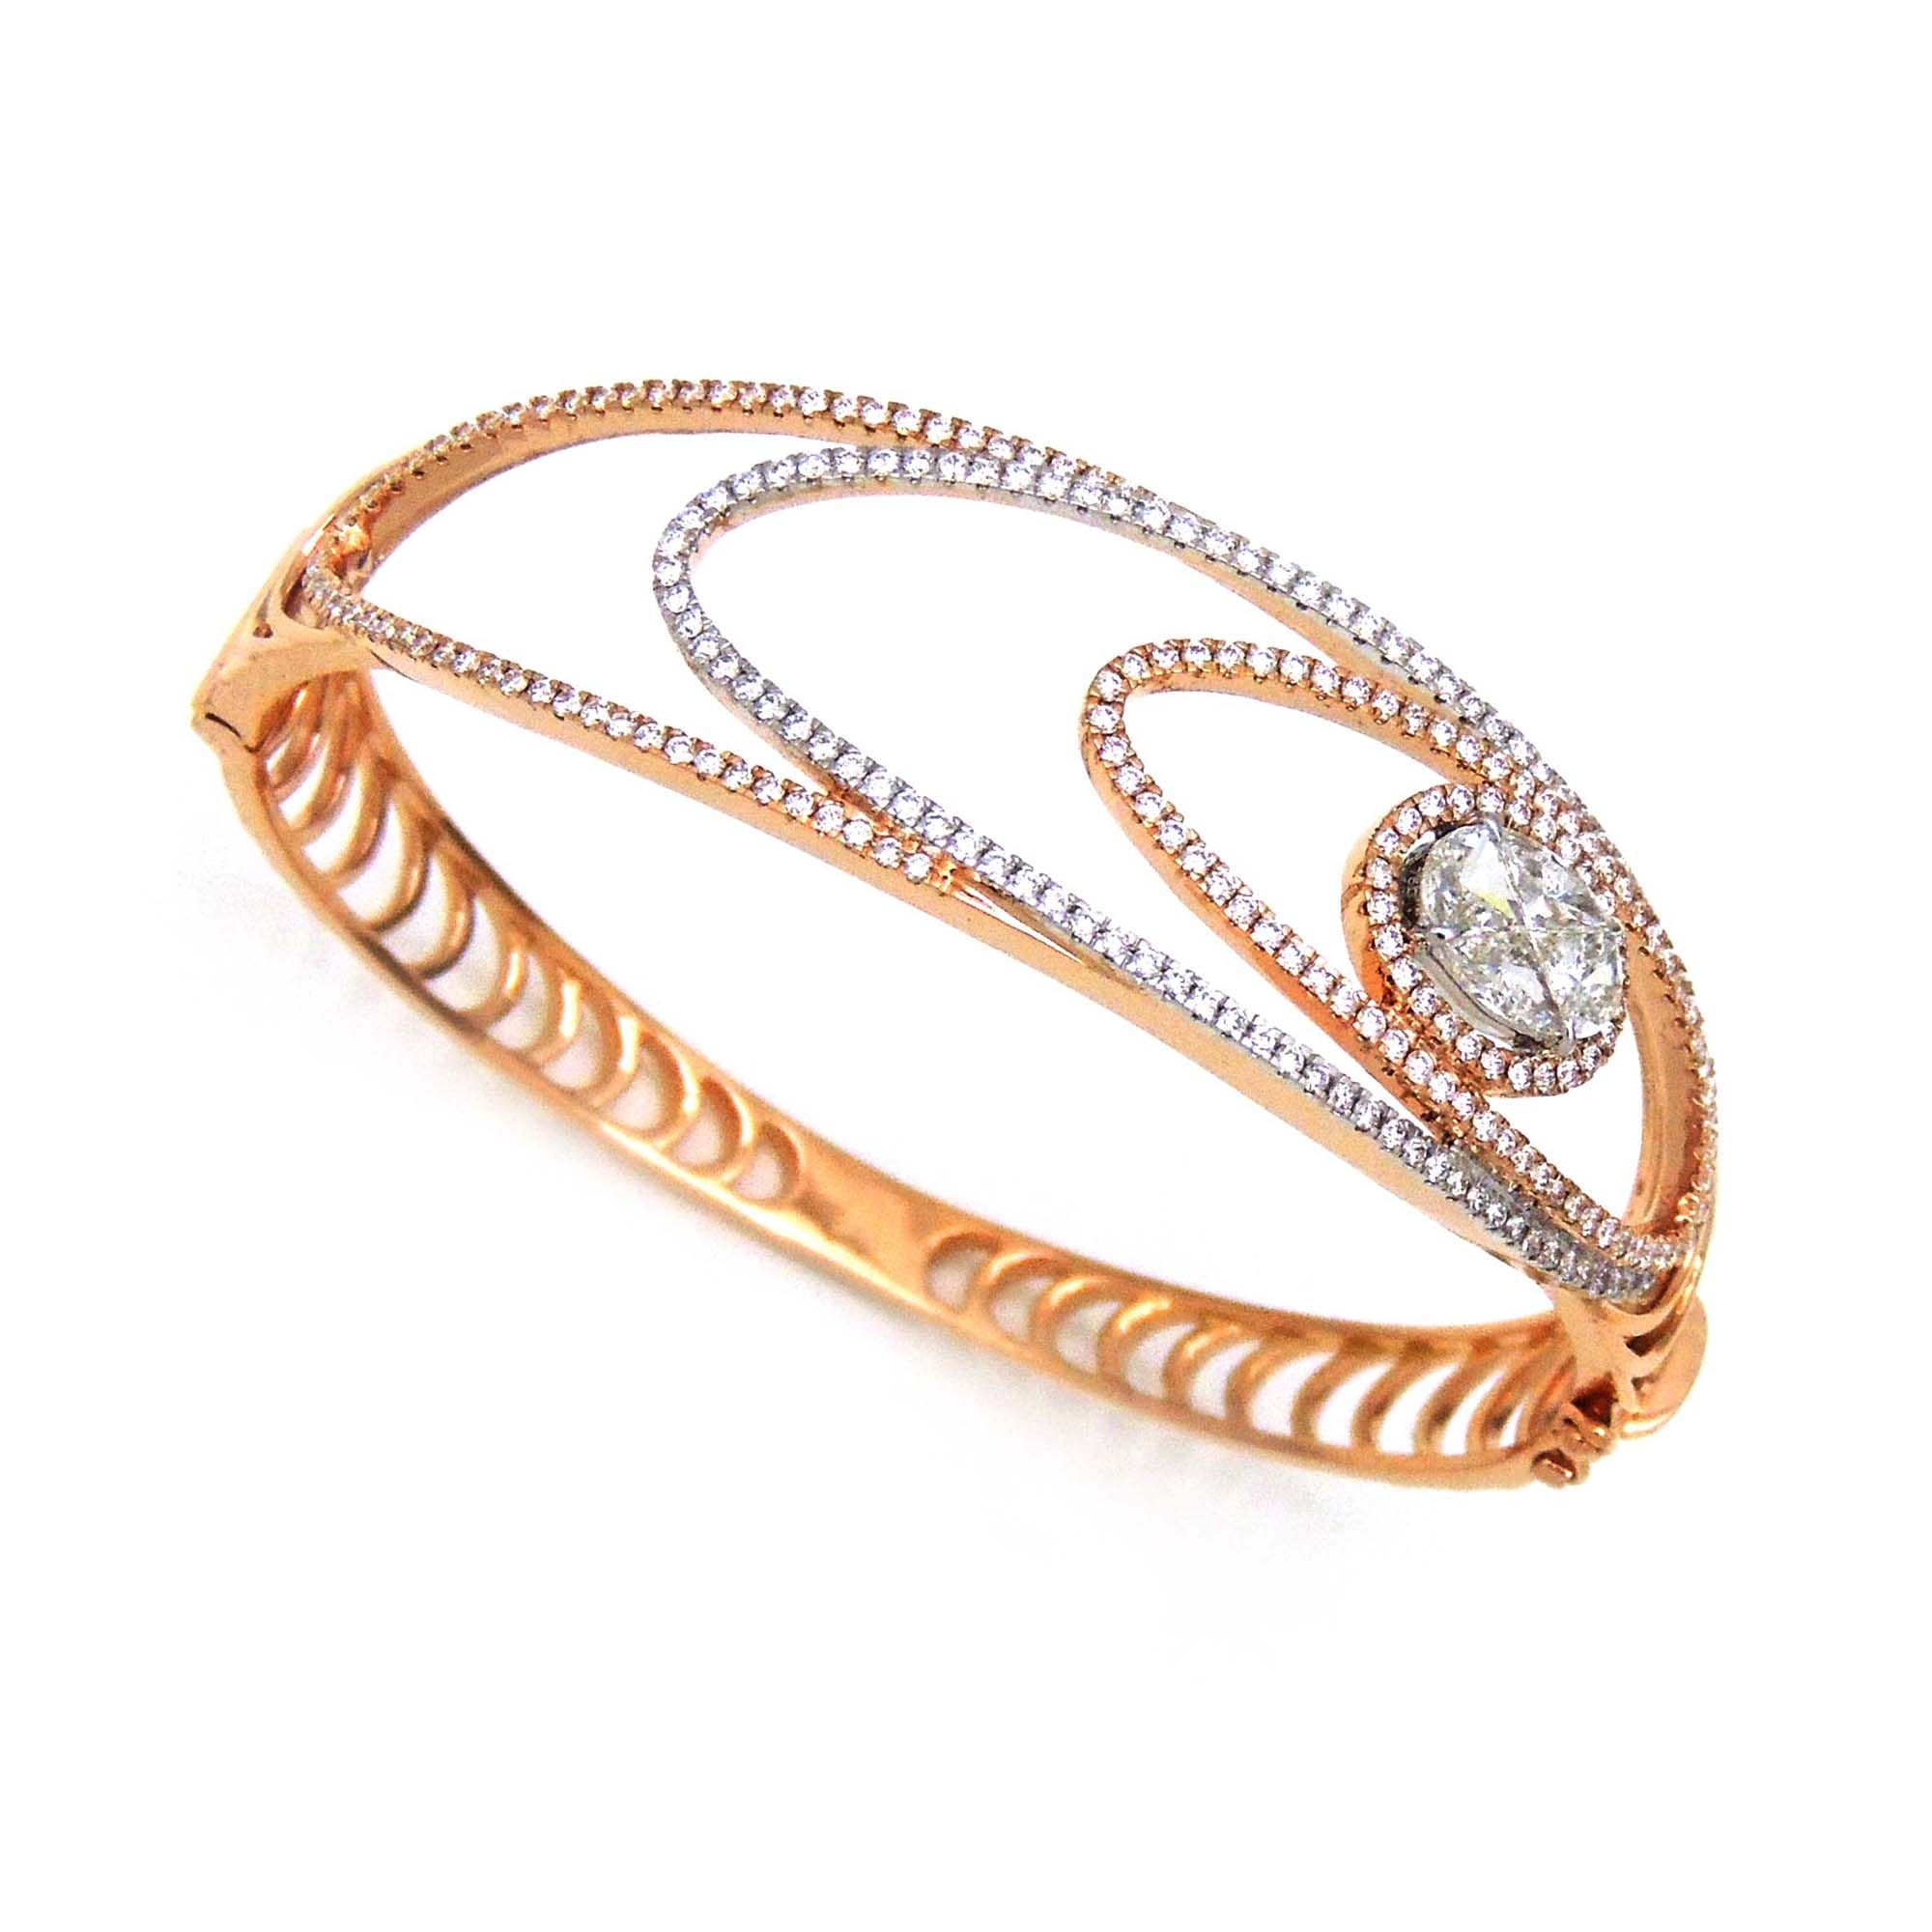 platinum fine jewelry semi baguette jewelers precious bangles london bangle collection rose bracelet stackable diamond gold bracelets